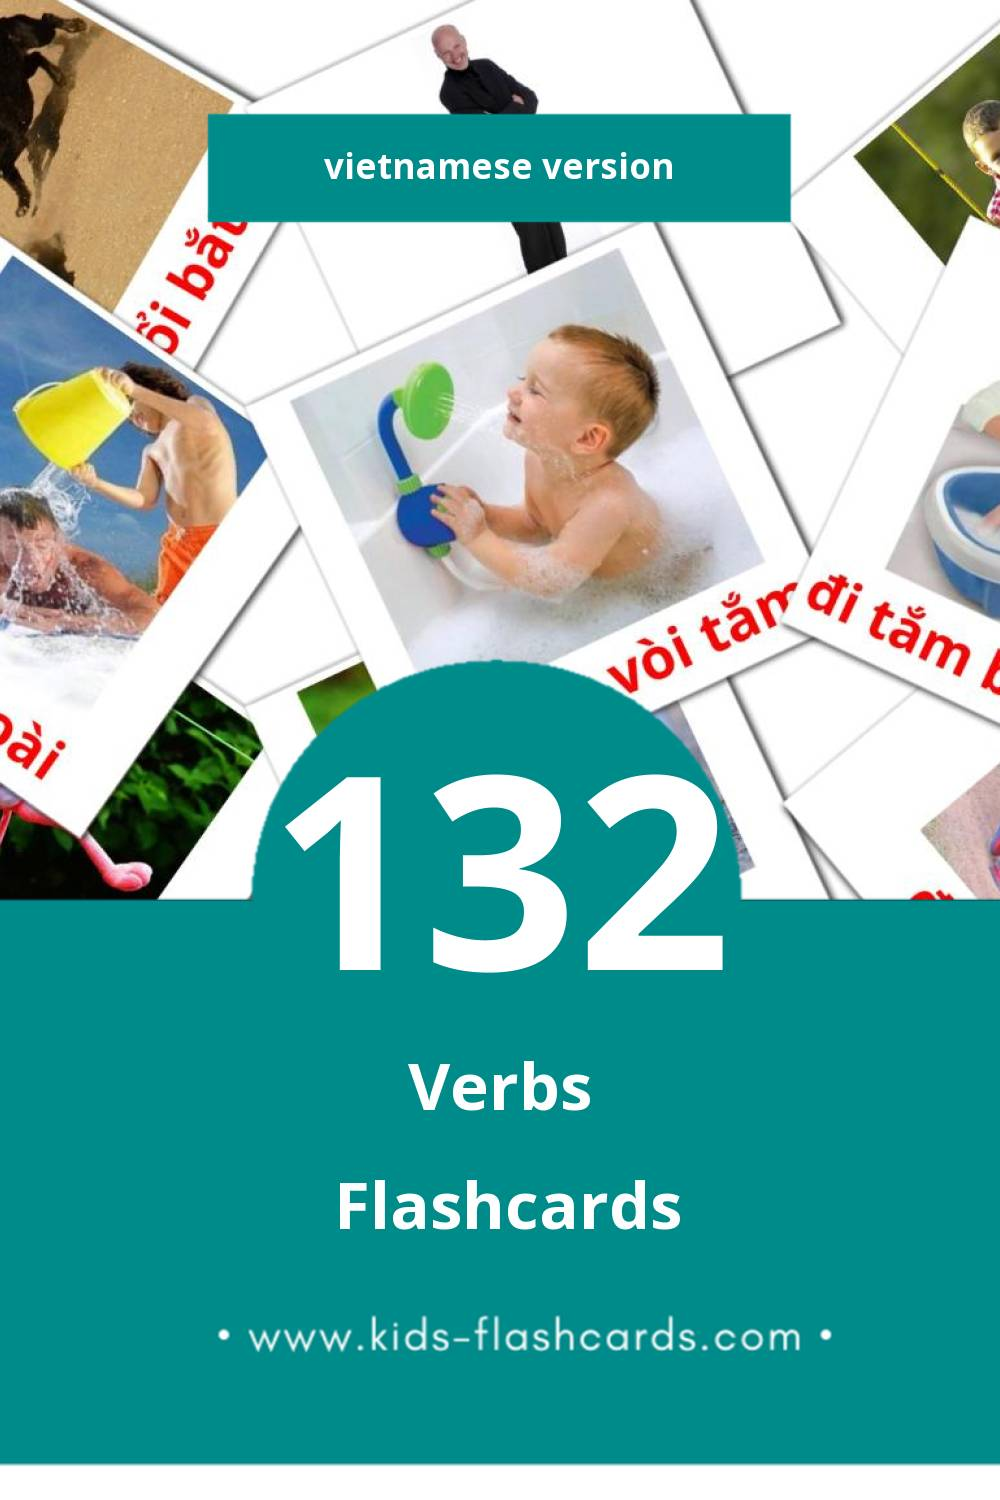 Visual Hoạt động Flashcards for Toddlers (133 cards in Vietnamese)